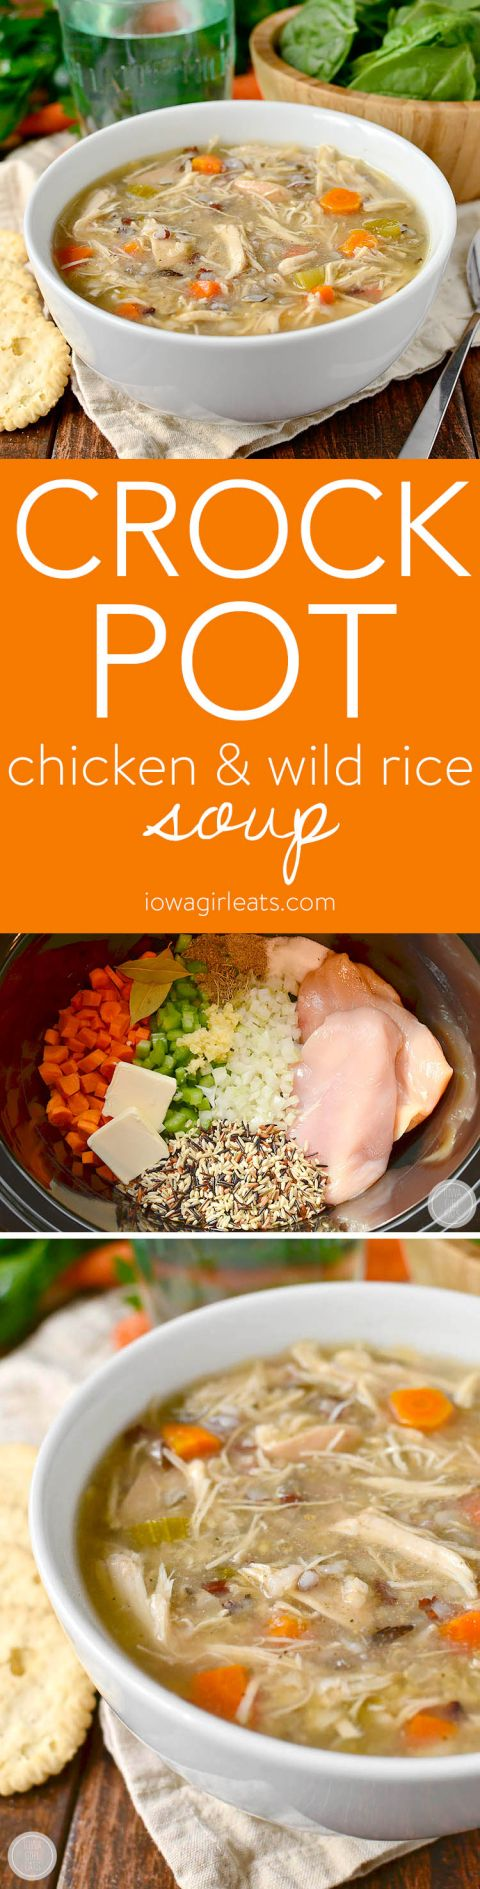 """Crock Pot Chicken and Wild Rice Soup could not be simpler nor more comforting. Simply add fridge and pantry staples into the crock pot then push """"on""""!   iowagirleats.com. Dairy free."""